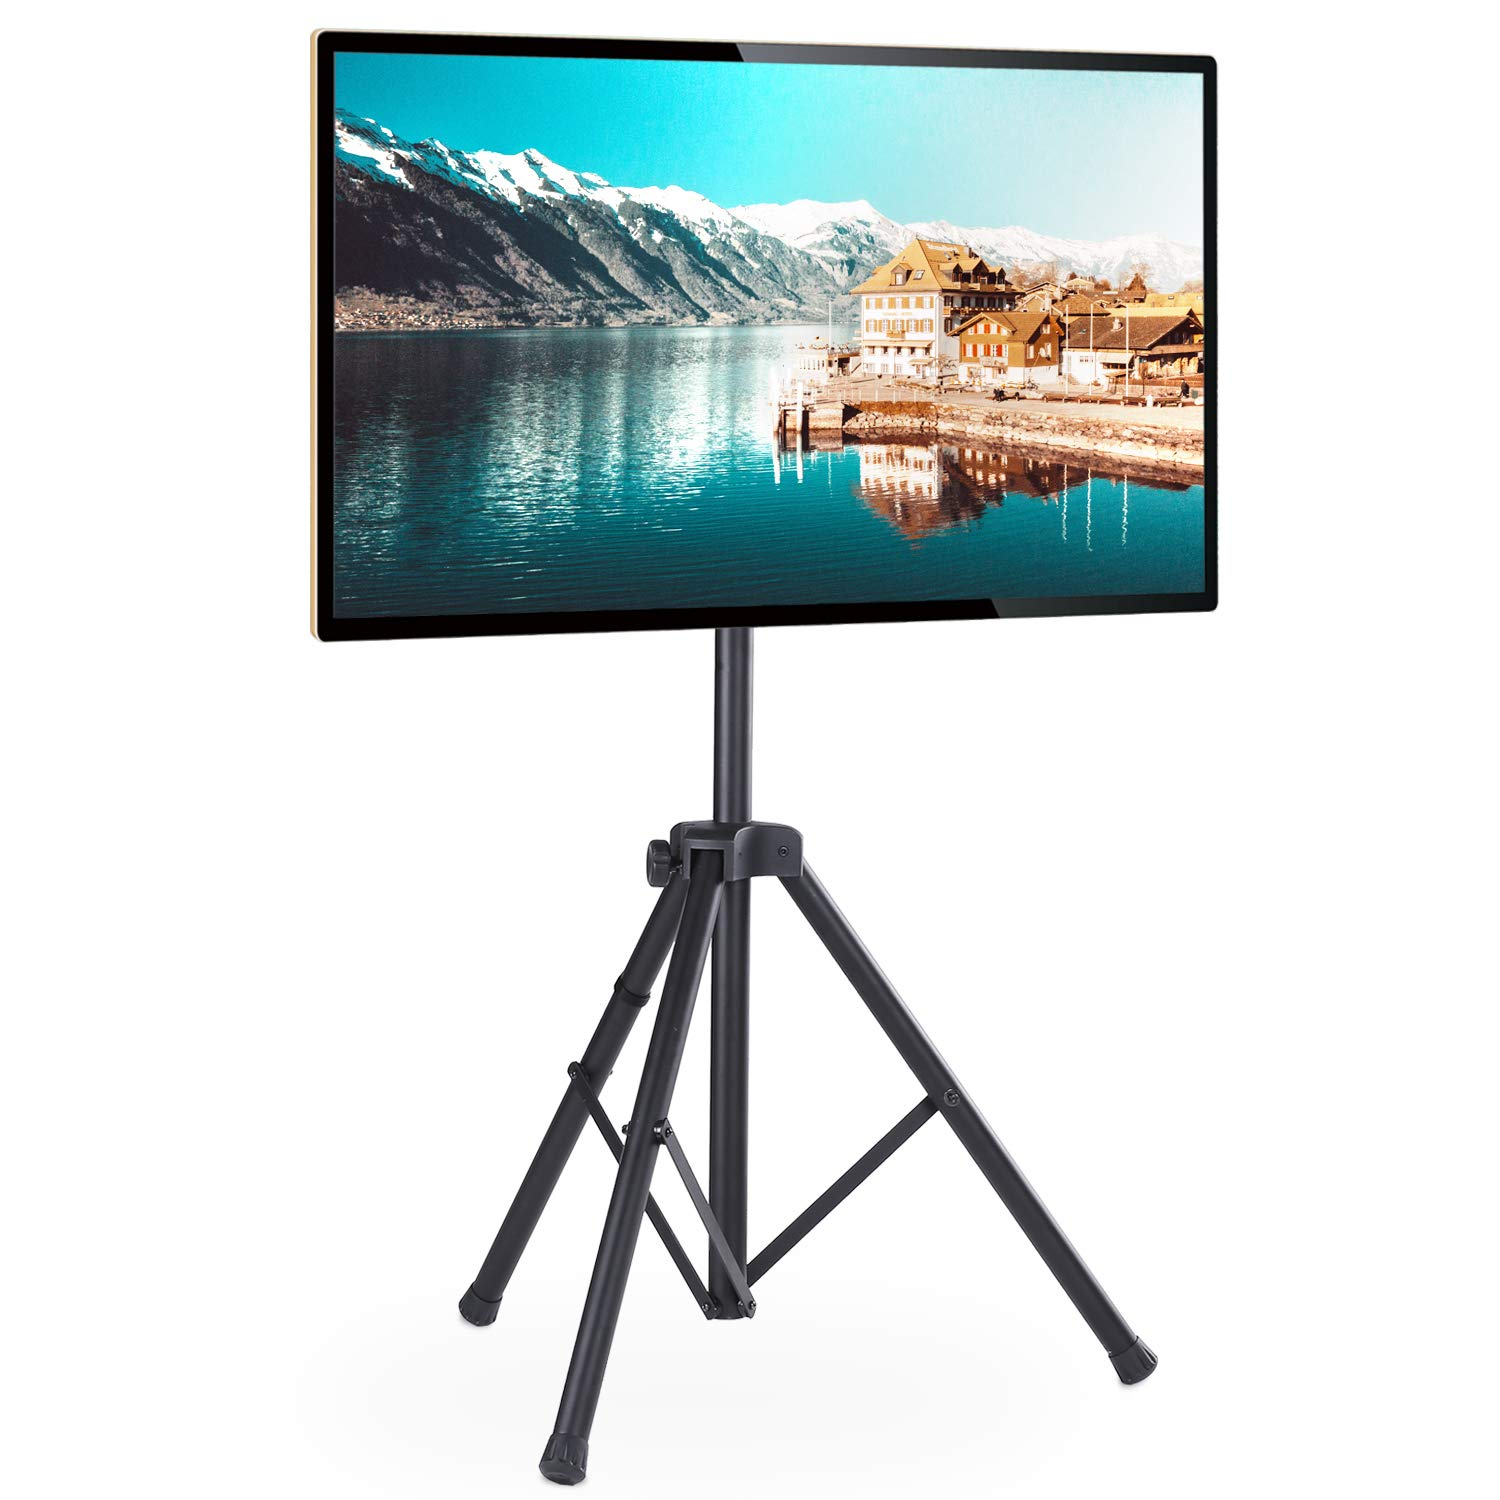 Rfiver Portable Tripod TV Display Floor Stand with Swivel & Tilt Mount for 32''-60'' Plasma LCD, LED, OLED Flat/Curved Screen TVs, Height Adjustable and Legs Foldable, Max VESA 400x400mm, Black DS1001 by Rfiver